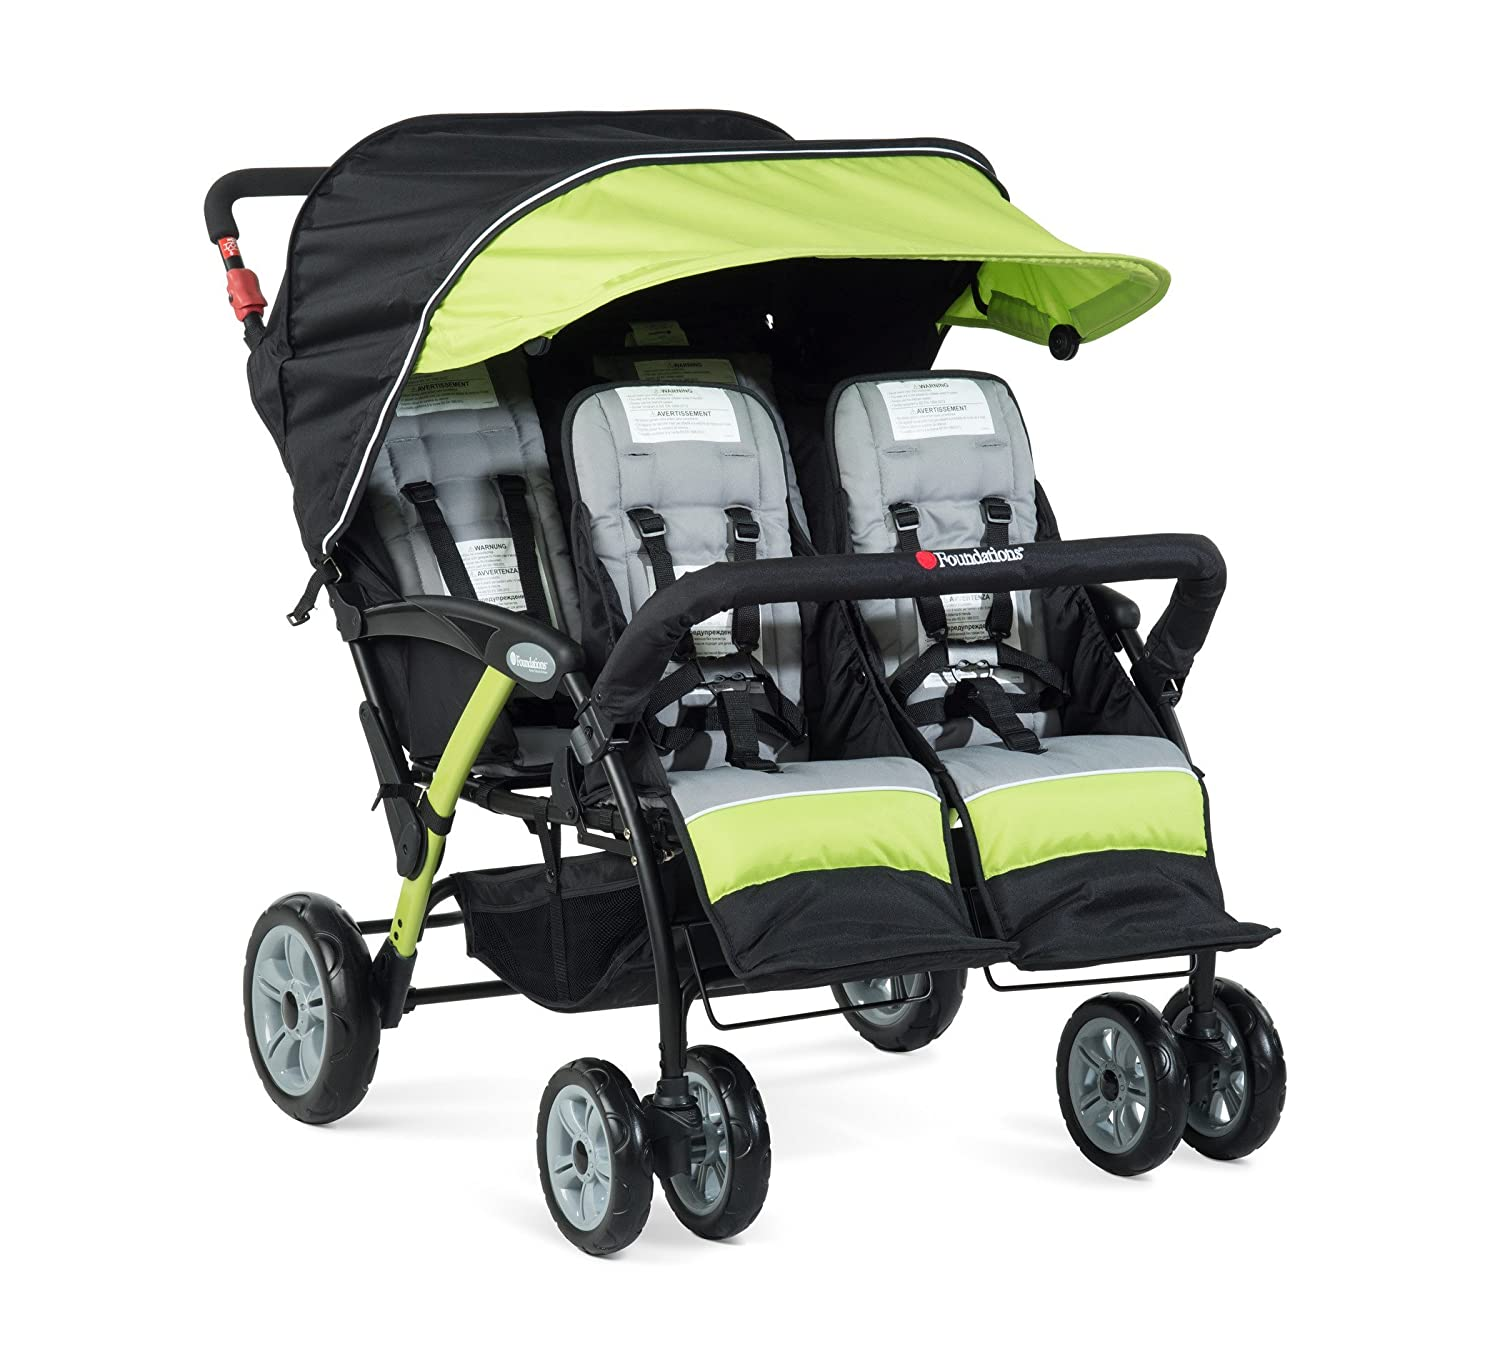 2020 Foundations The Quad Sport 4-Passenger Stroller, Lime 81NwHkBSaNL._SL1500_